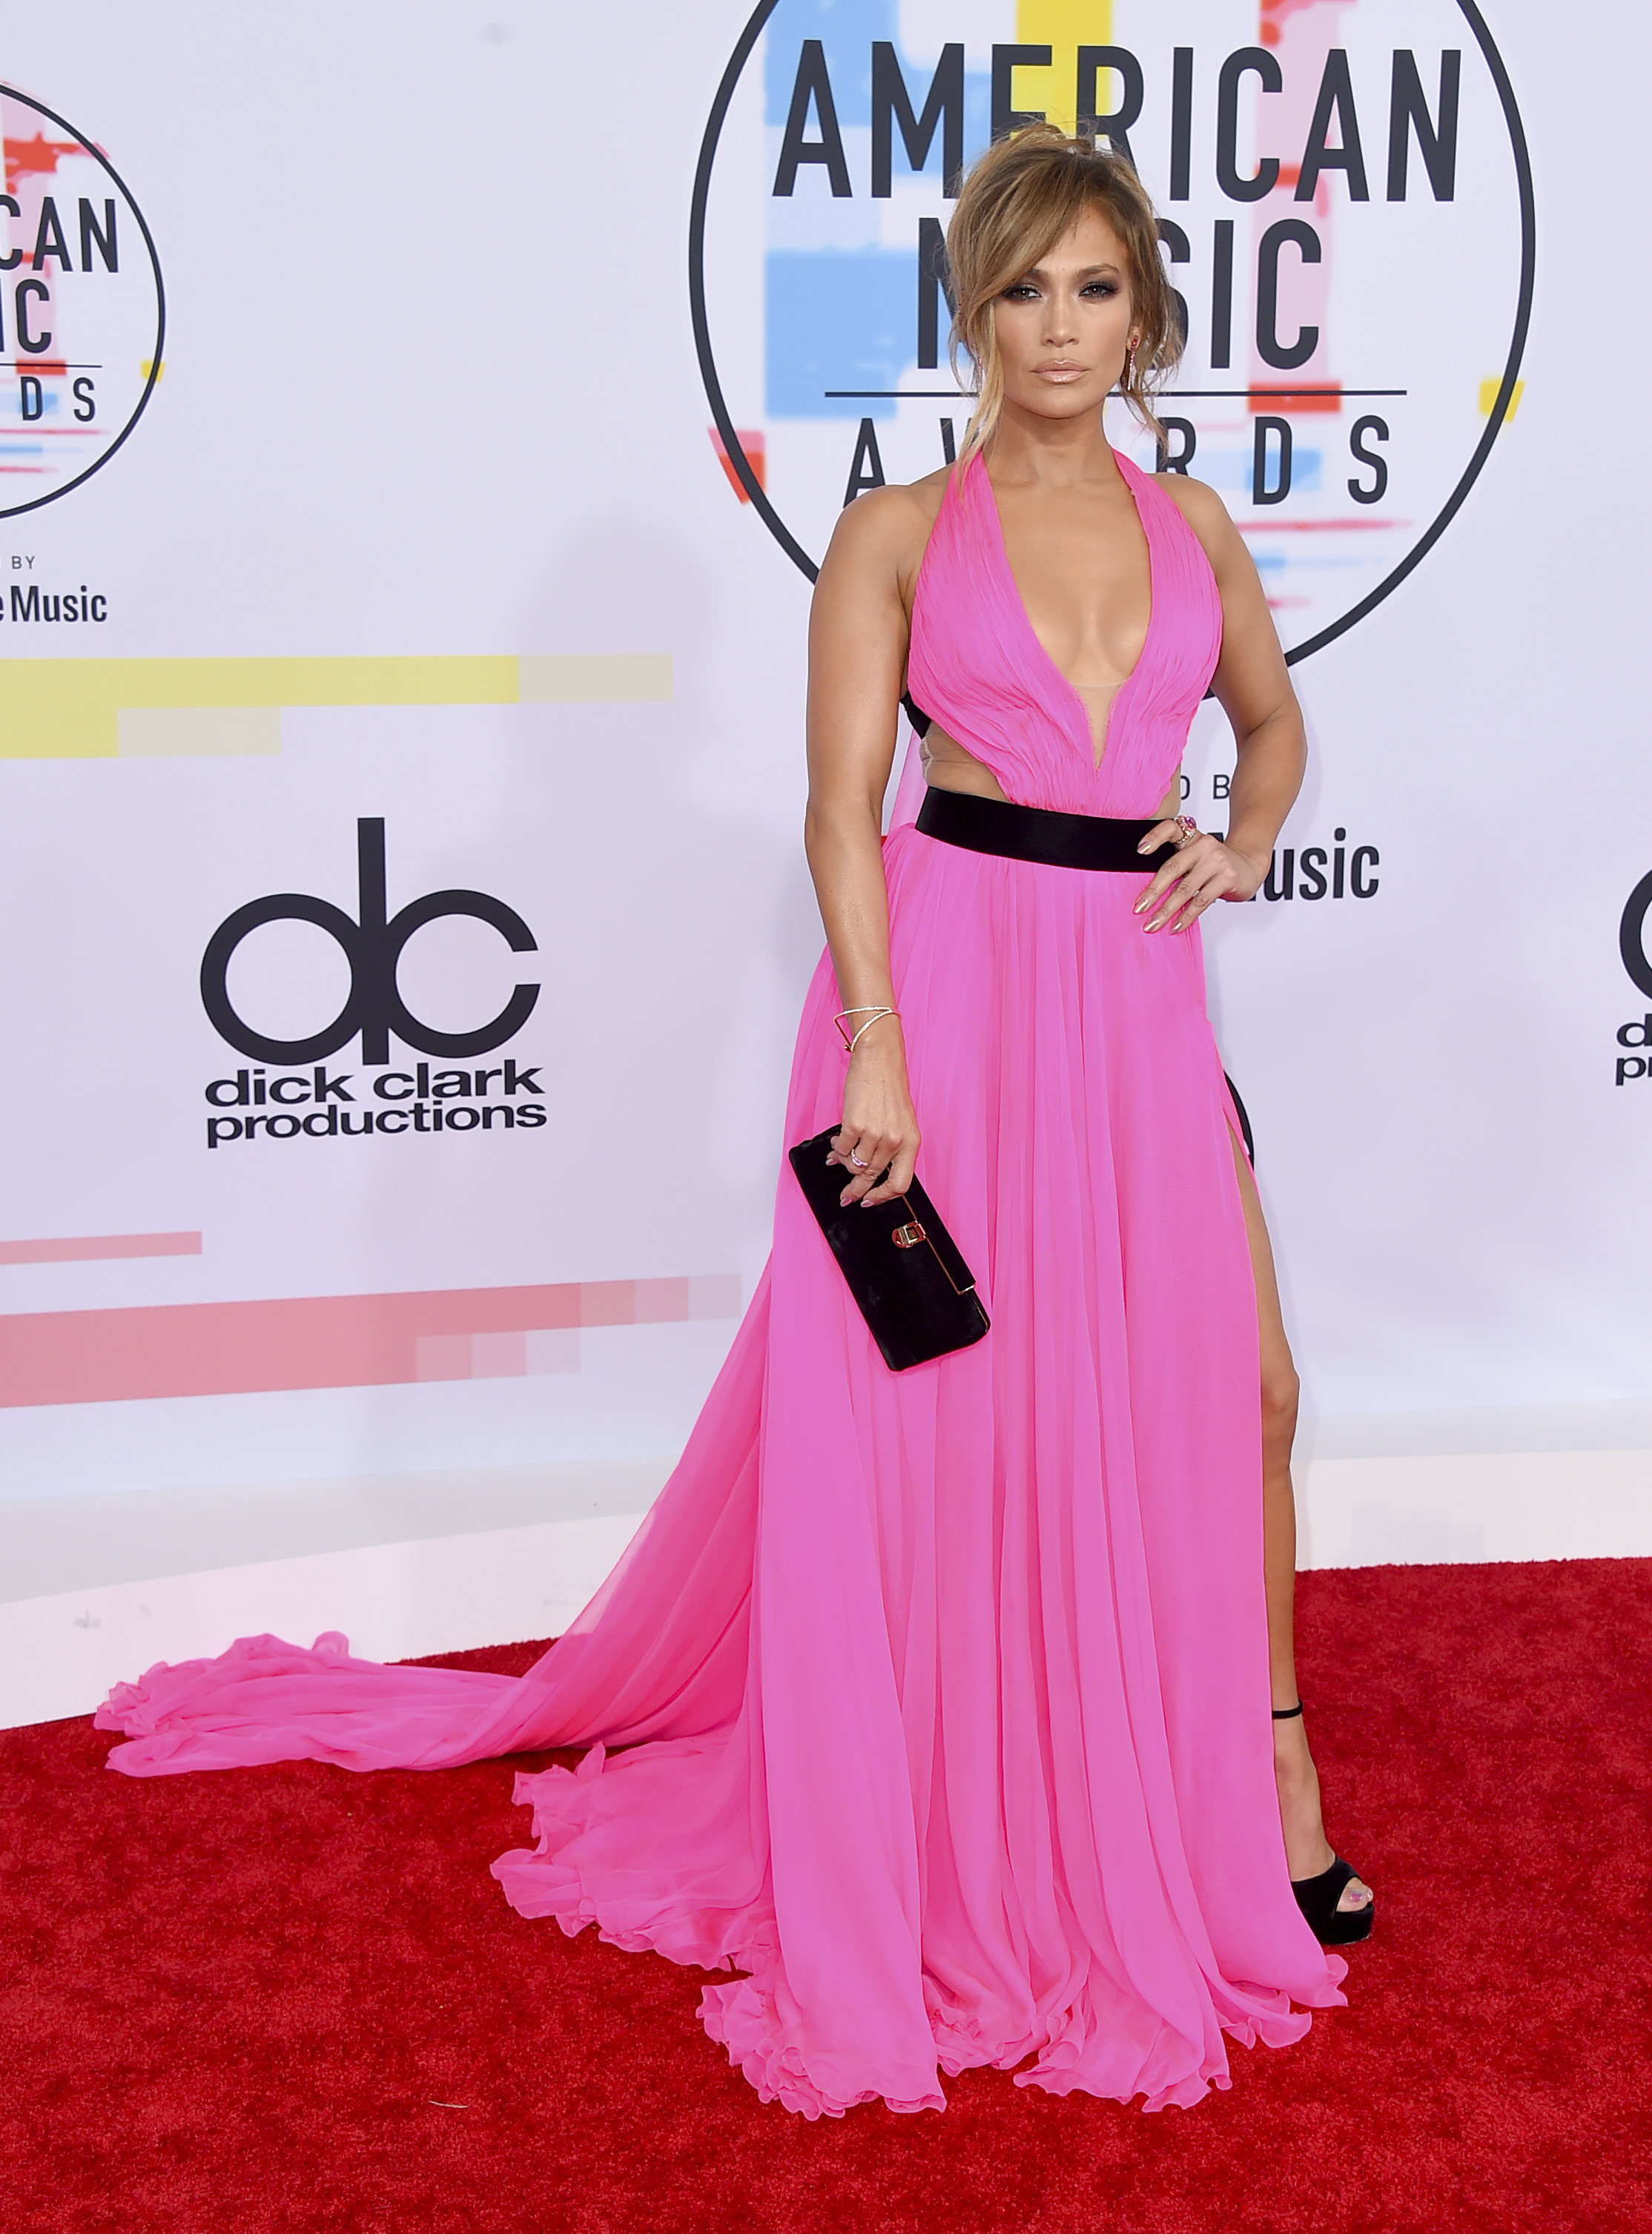 "<div class=""meta image-caption""><div class=""origin-logo origin-image none""><span>none</span></div><span class=""caption-text"">Jennifer Lopez arrives at the American Music Awards on Tuesday, Oct. 9, 2018, at the Microsoft Theater in Los Angeles. (Jordan Strauss/Invision/AP)</span></div>"